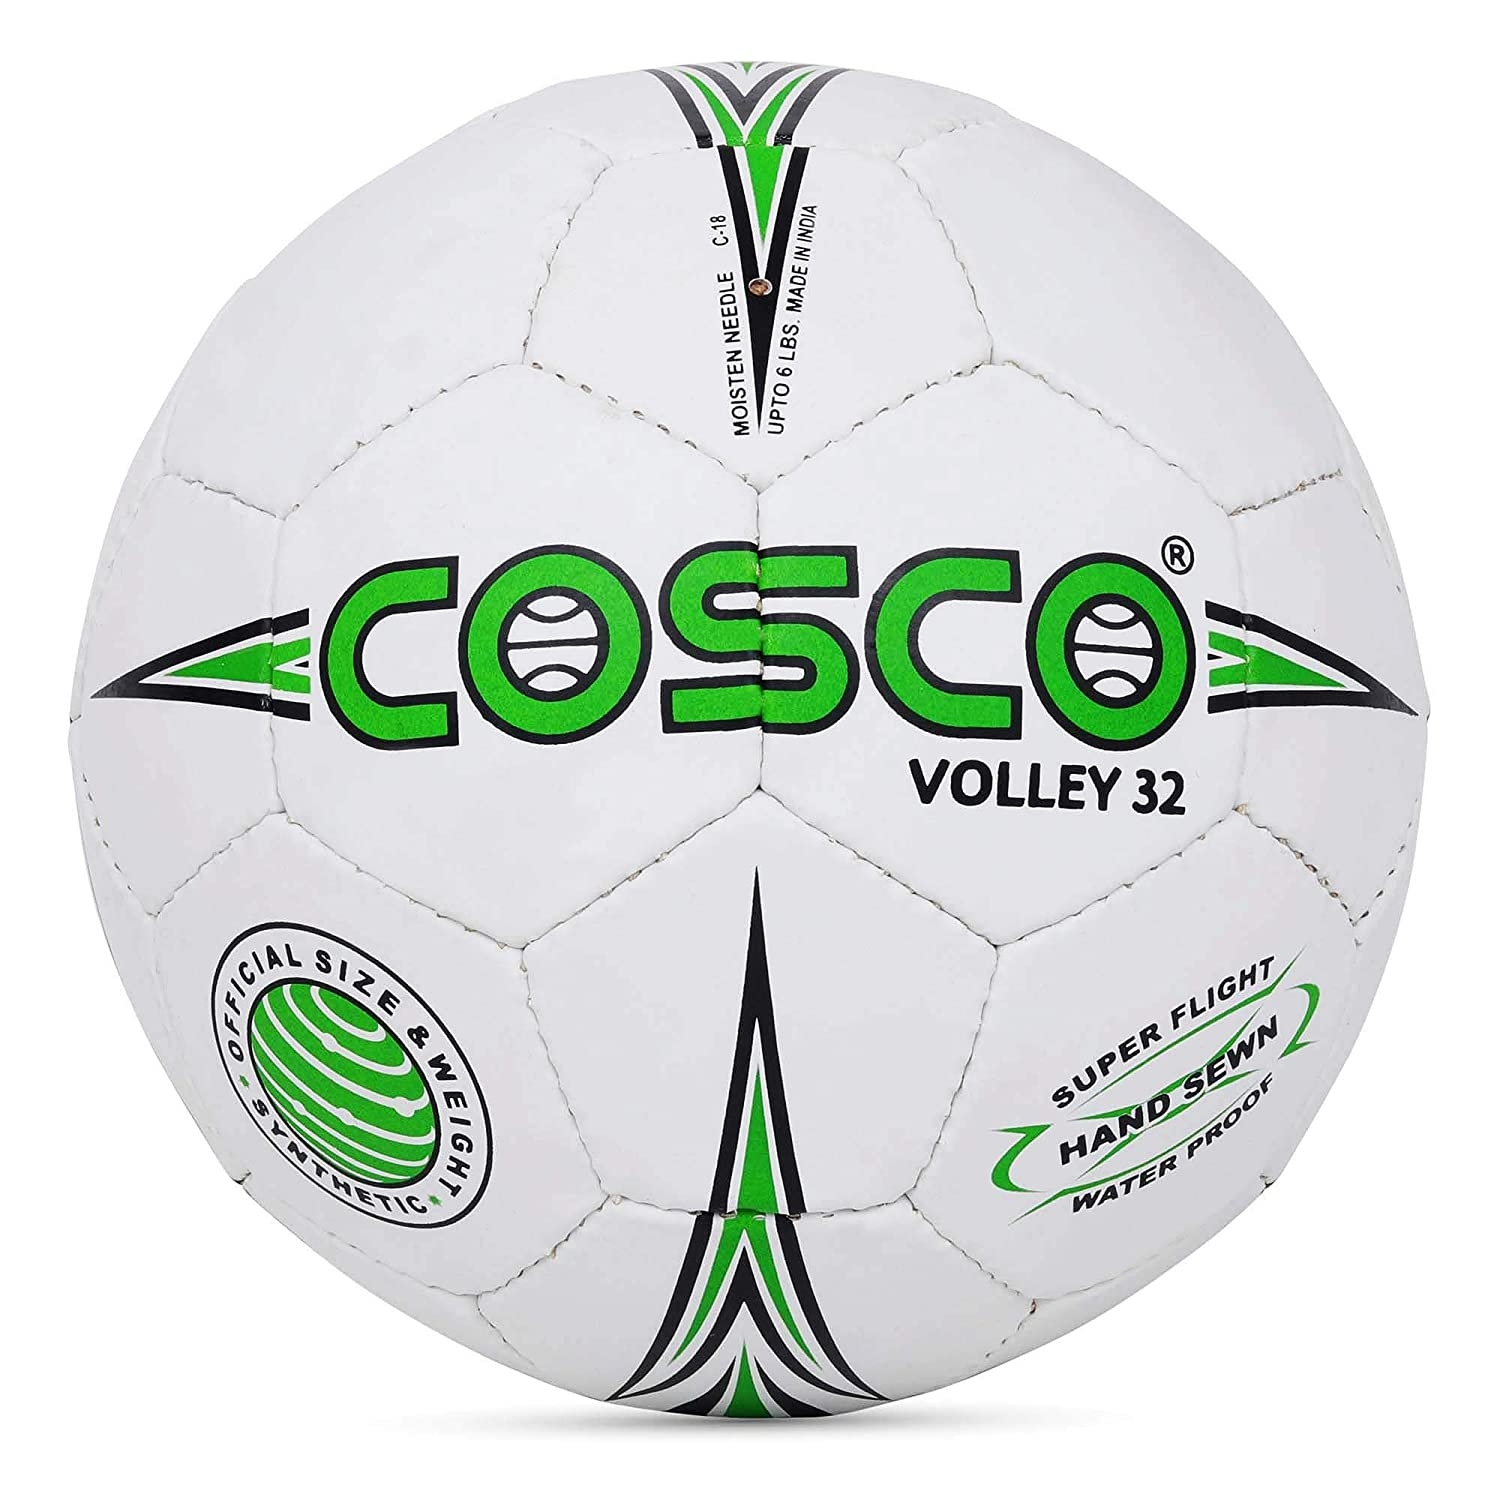 Buy Cosco Volley 32 Volley Ball Size 4 Online At Low Prices In India Amazon In